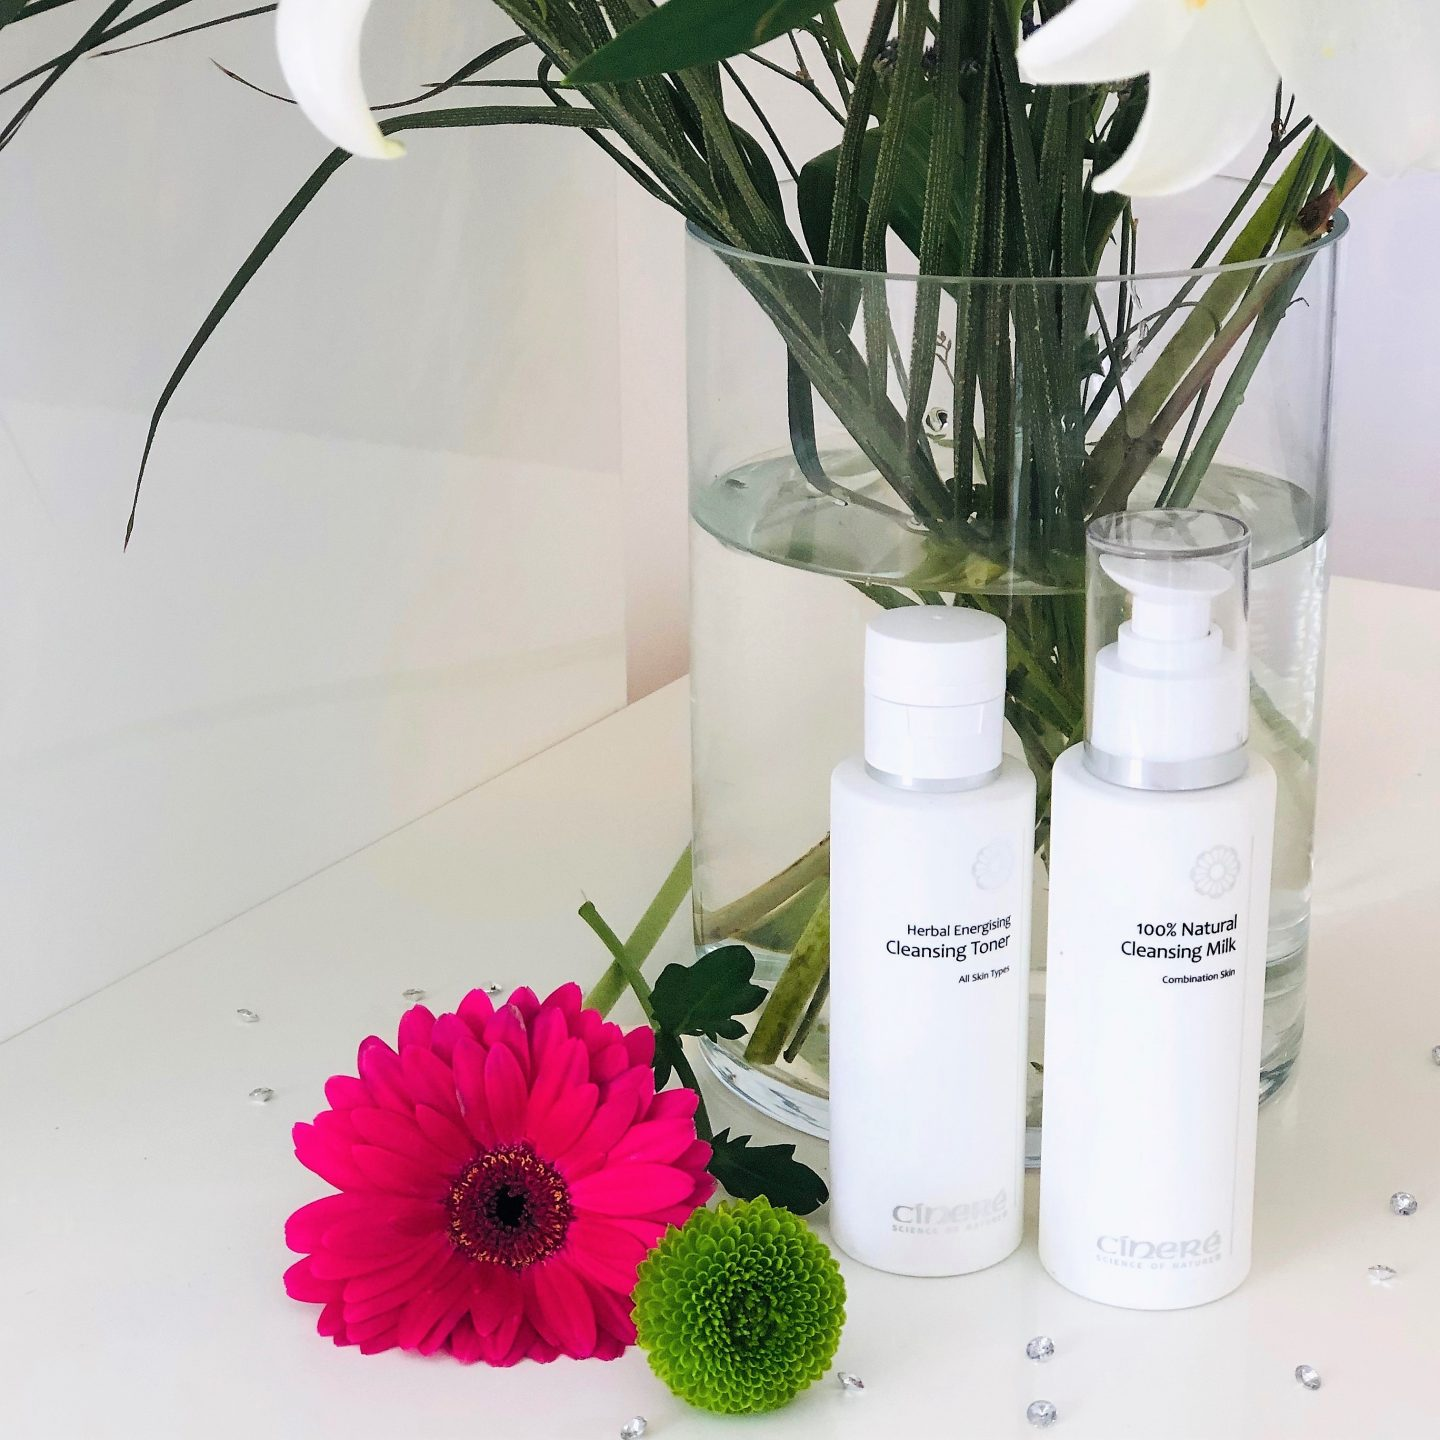 CÍNERÉ SKINCARE CLEANSING PRODUCTS:REVIEW